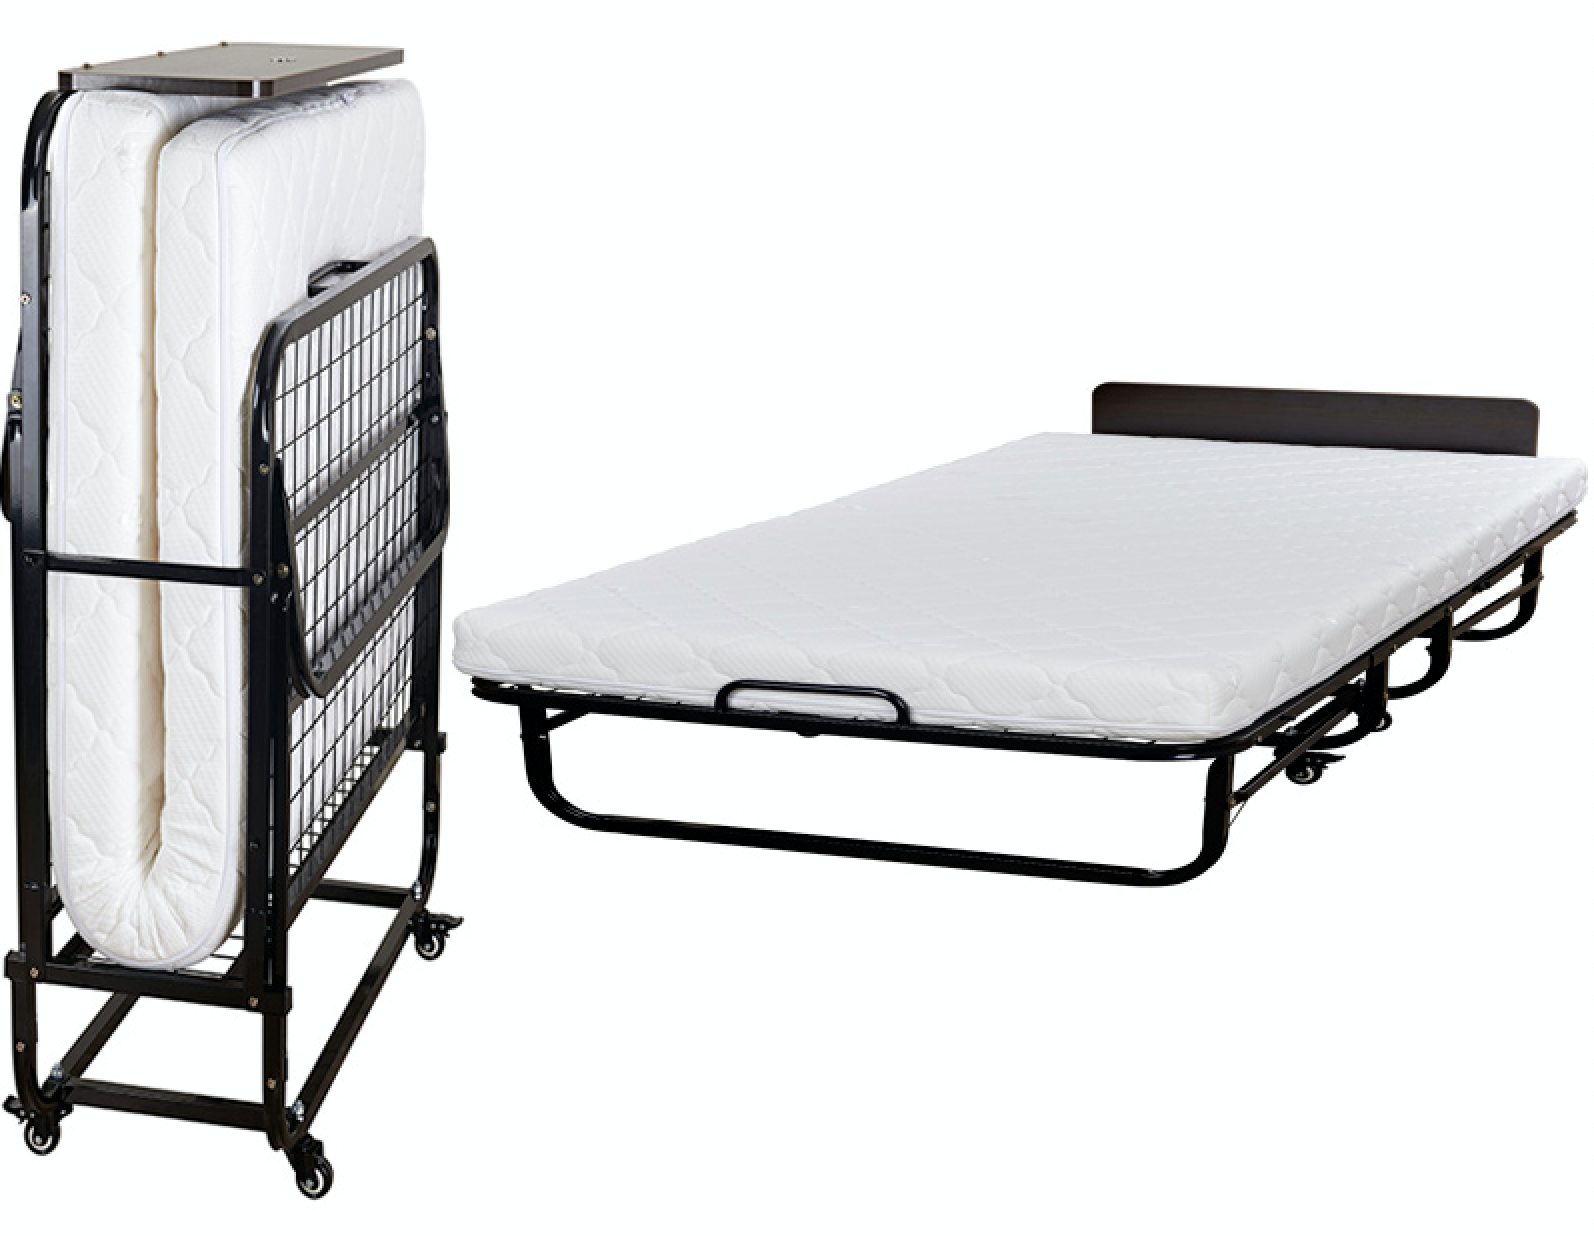 Deluxe Folding Bed with Inner Spring Mattress.png